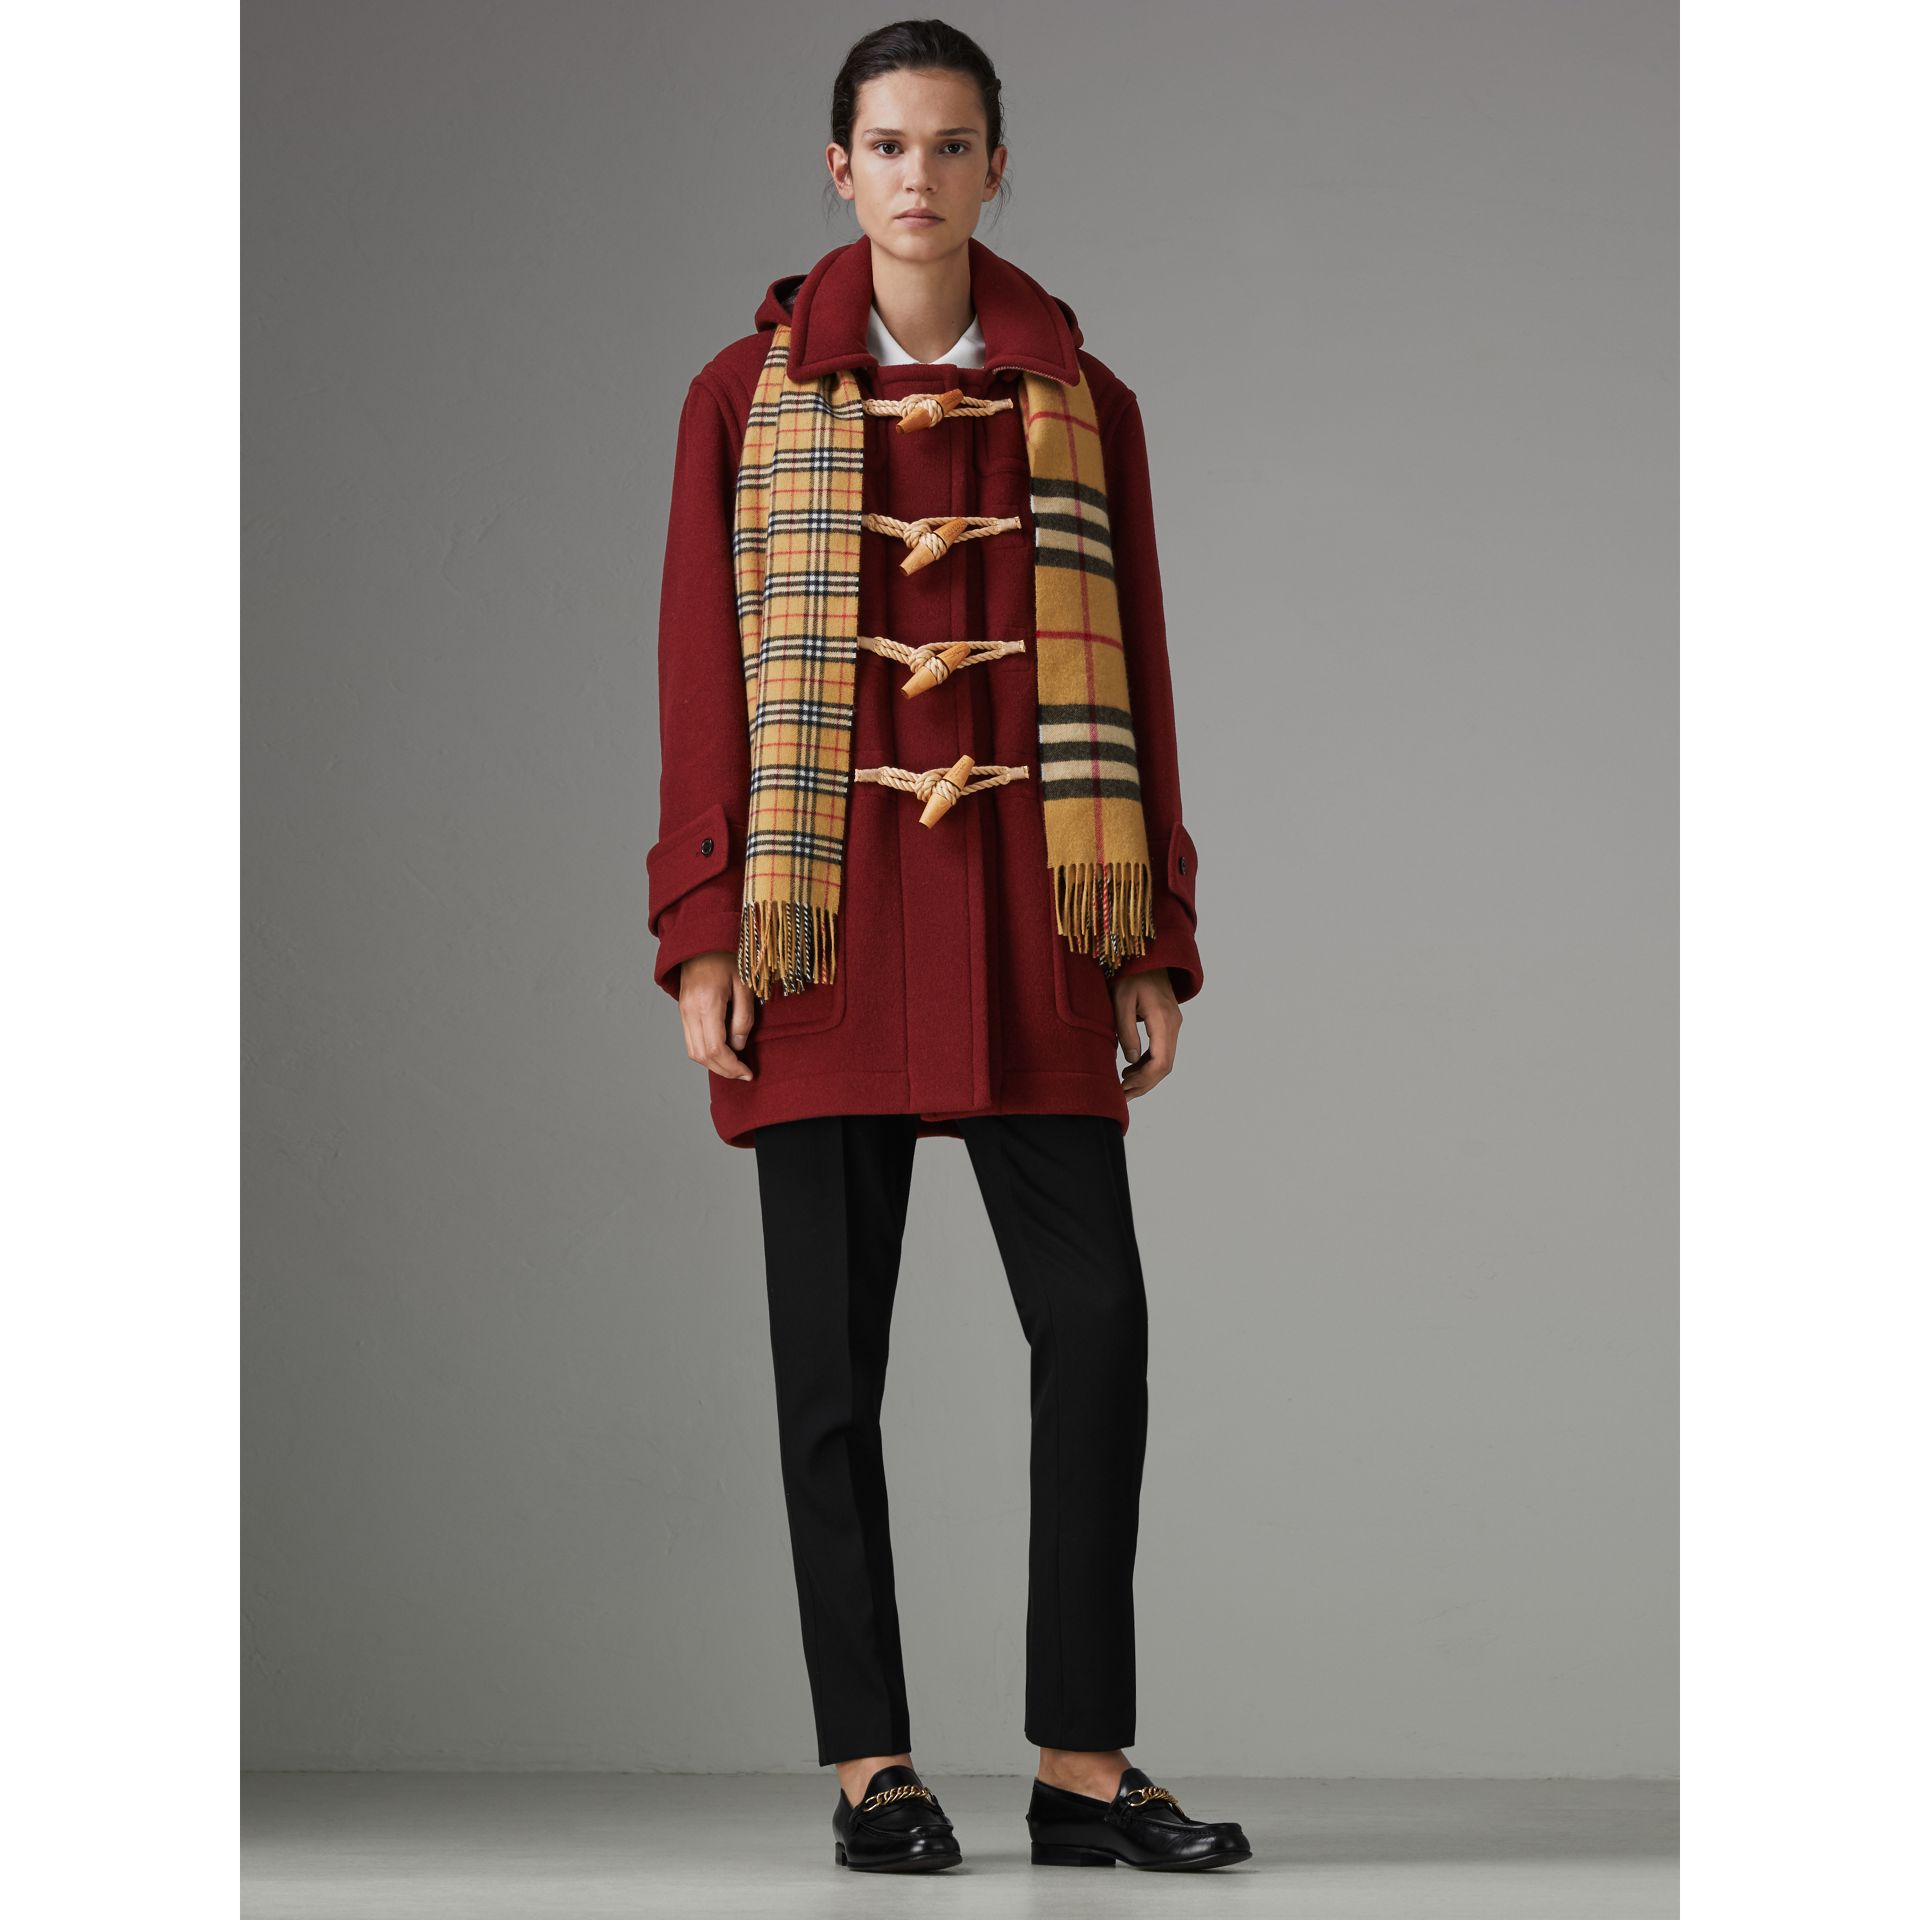 Gosha x Burberry Oversized Duffle Coat in Claret | Burberry United Kingdom - gallery image 2